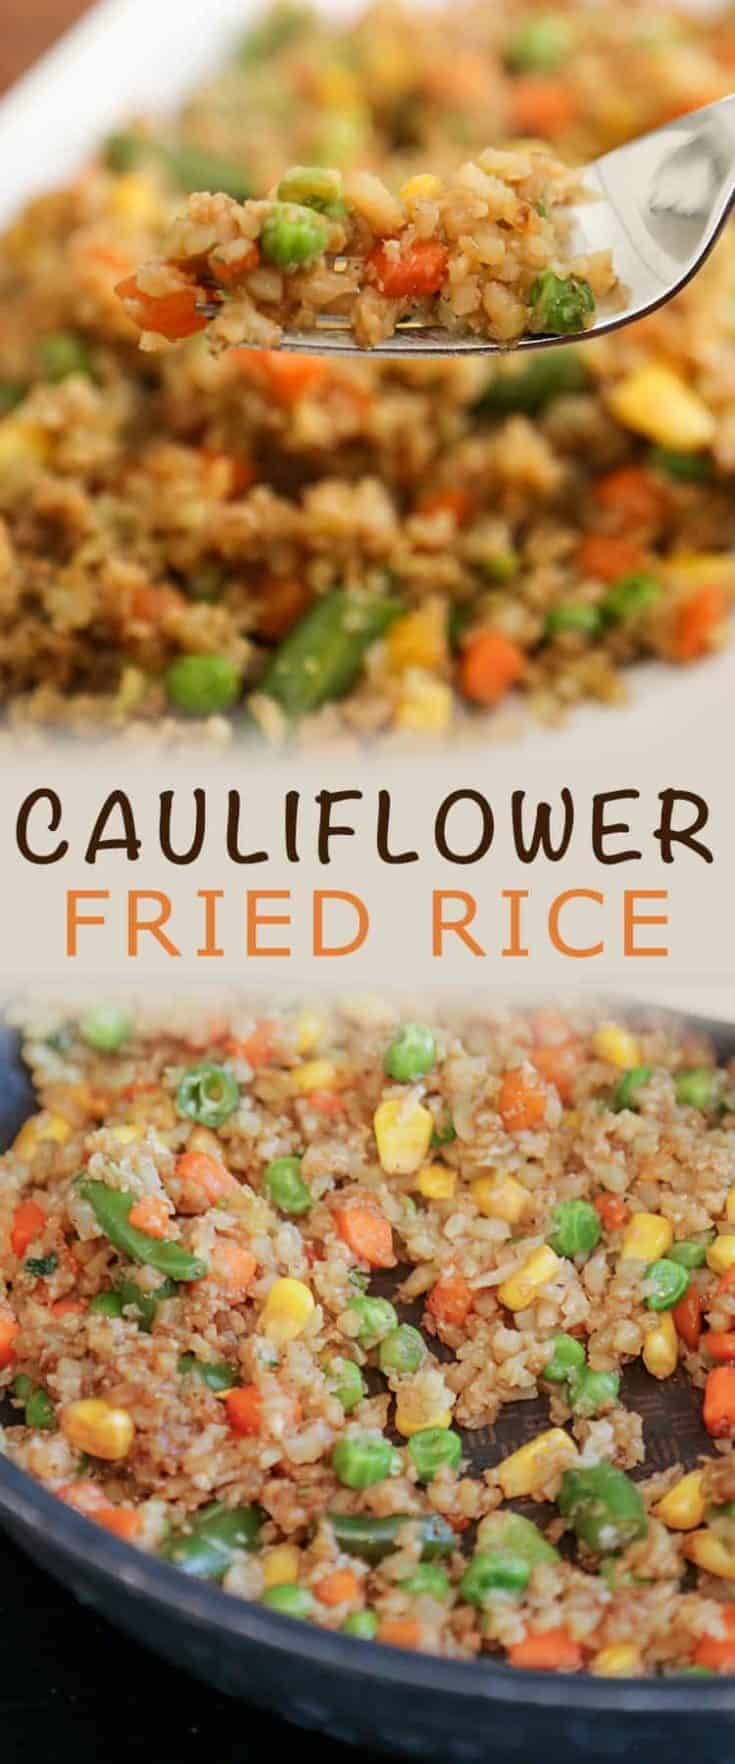 If you love Chinese fried rice, but don't enjoy the carb count that comes with it, you'll love this easy Cauliflower Fried Rice recipe. It takes few ingredients, can be ready in 15-20 minutes and is loaded with vegetables. #cauliflowerrice #cauliflowerfriedrice